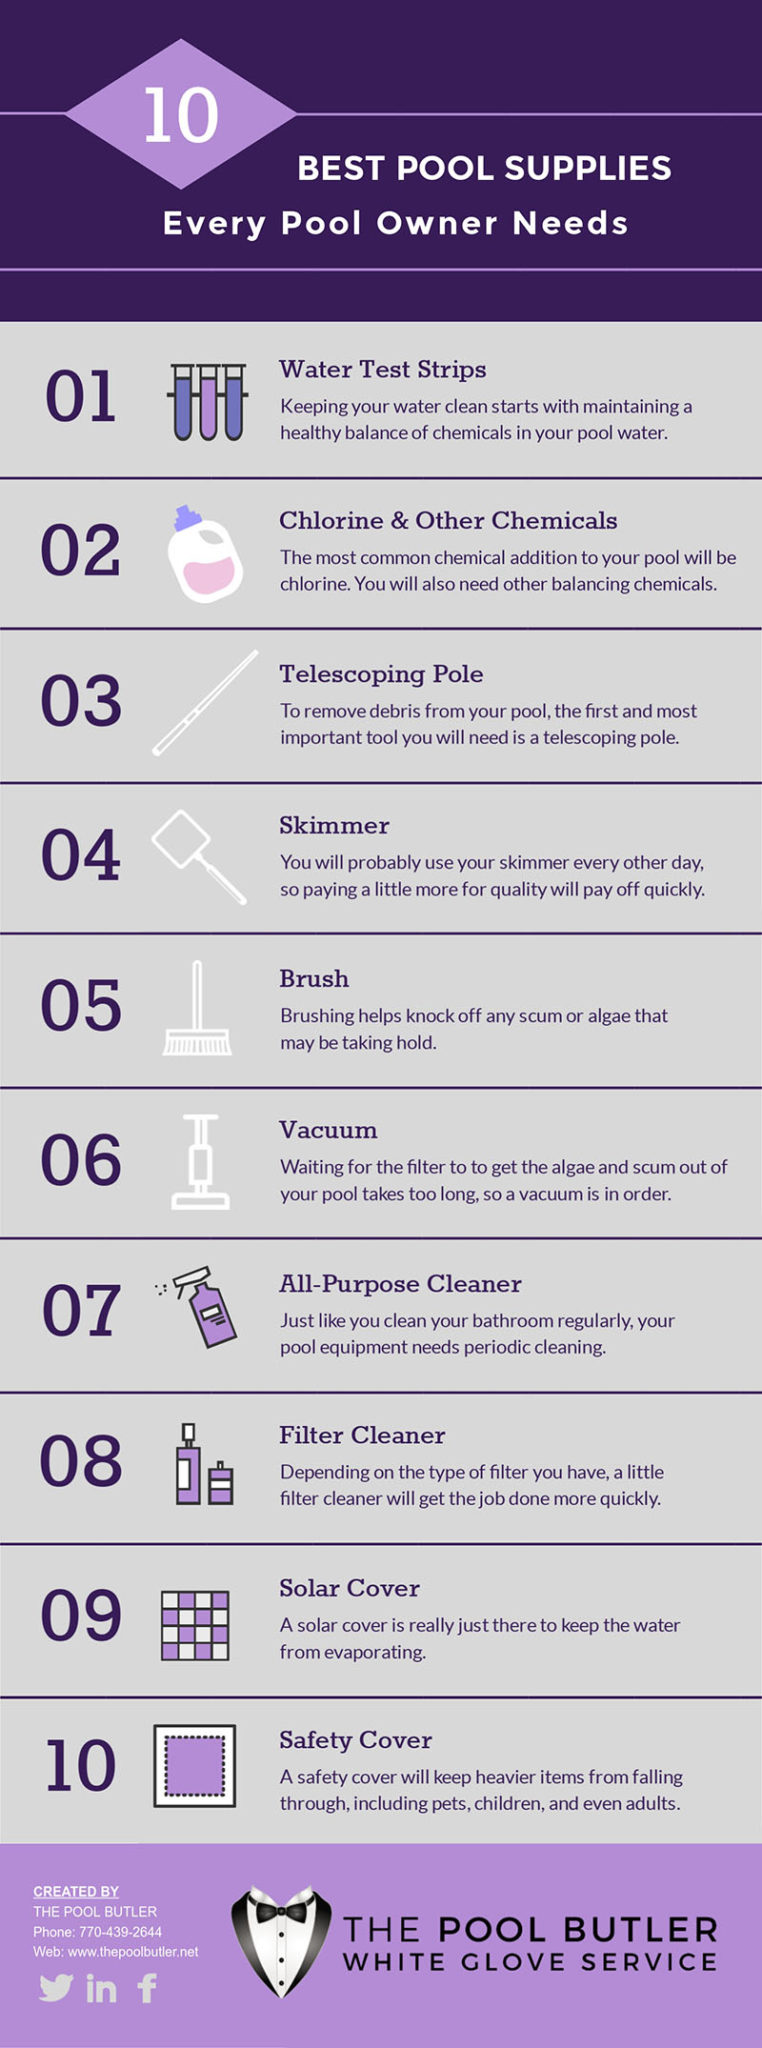 Best Pool Supplies Every Pool Owner Needs [infographic]